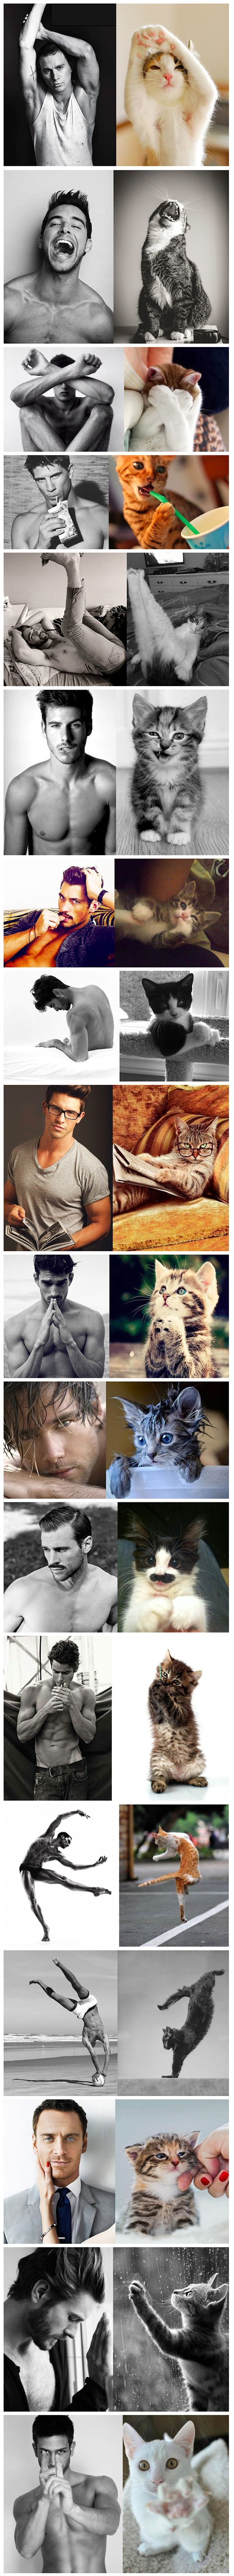 Des Hommes et Des Chatons (Men and Cats) is a single-topic blog that pairs similar photos of attractive men with pictures of adorable cats. The brilliant match-ups feature a variety of heartthrobs (including celebrities like Channing Tatum and Michael Fassbender) posing seductively alongside shots of cuddly felines striking a pose that makes the viewer question which subject they're more interested in looking at.